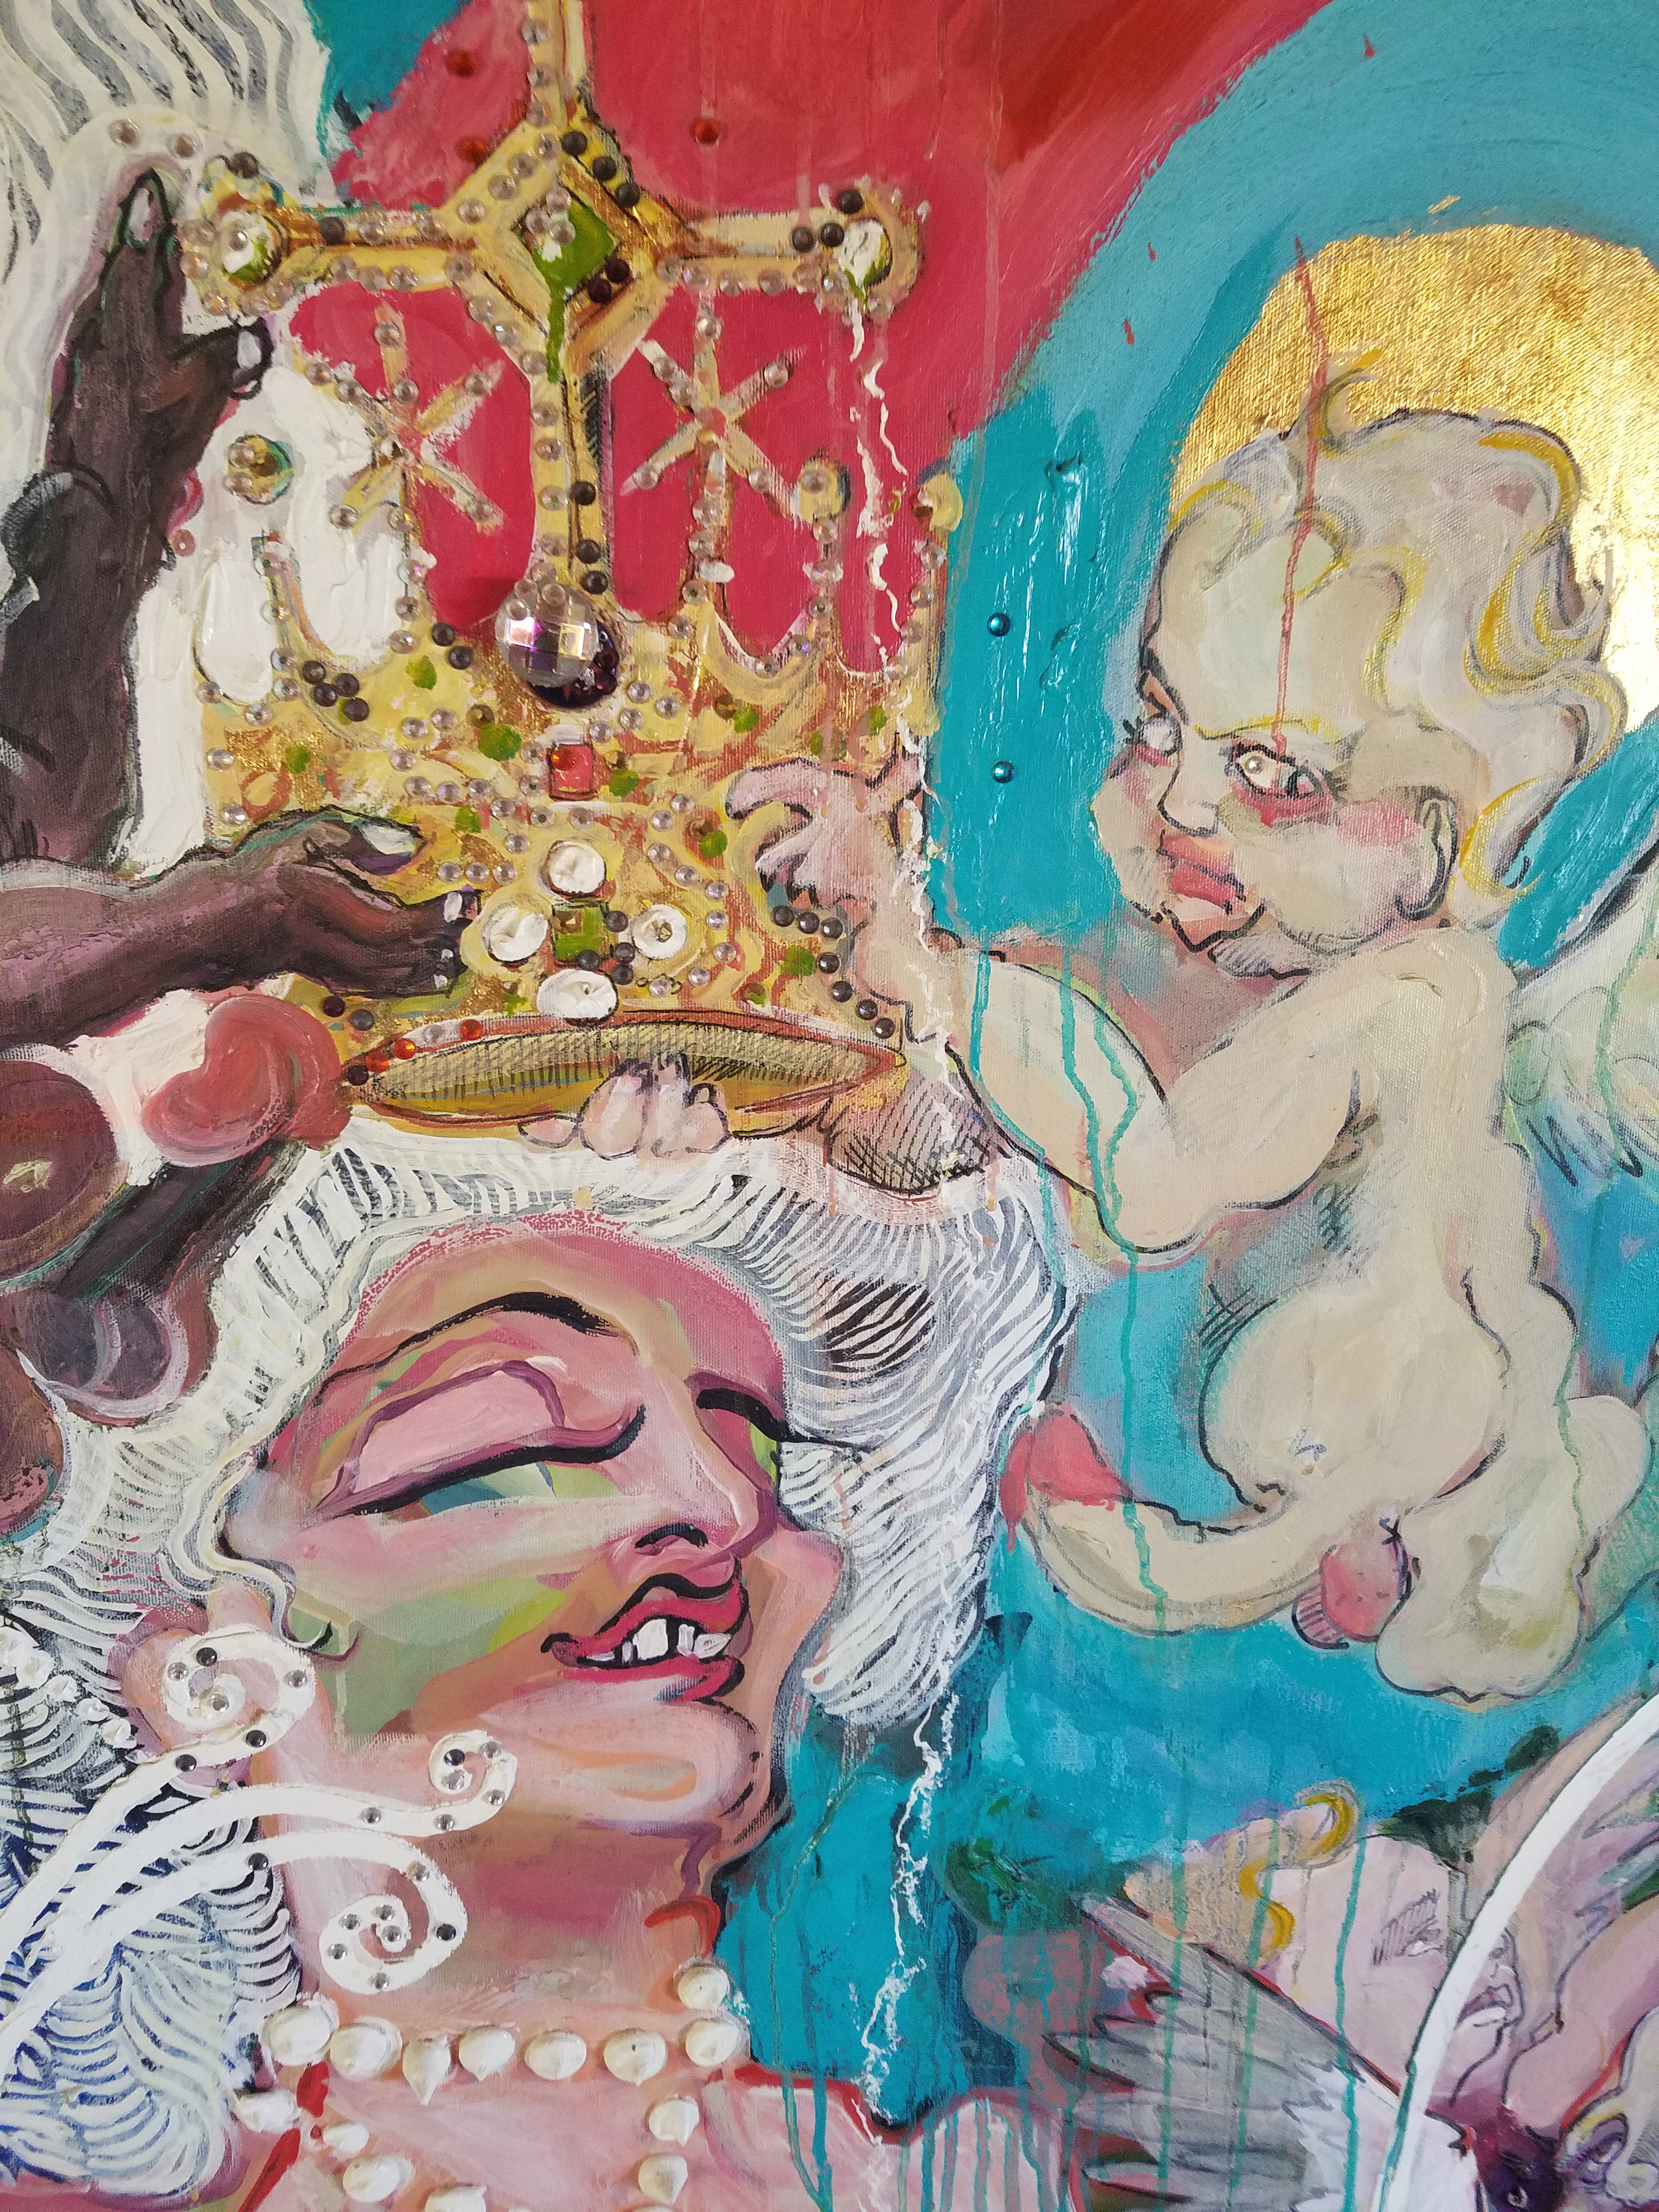 Aaron Sheppard, in Tales of the Flesh 2: Born Adversaries, Western Projects in Los Angeles (Image courtesy the artist)